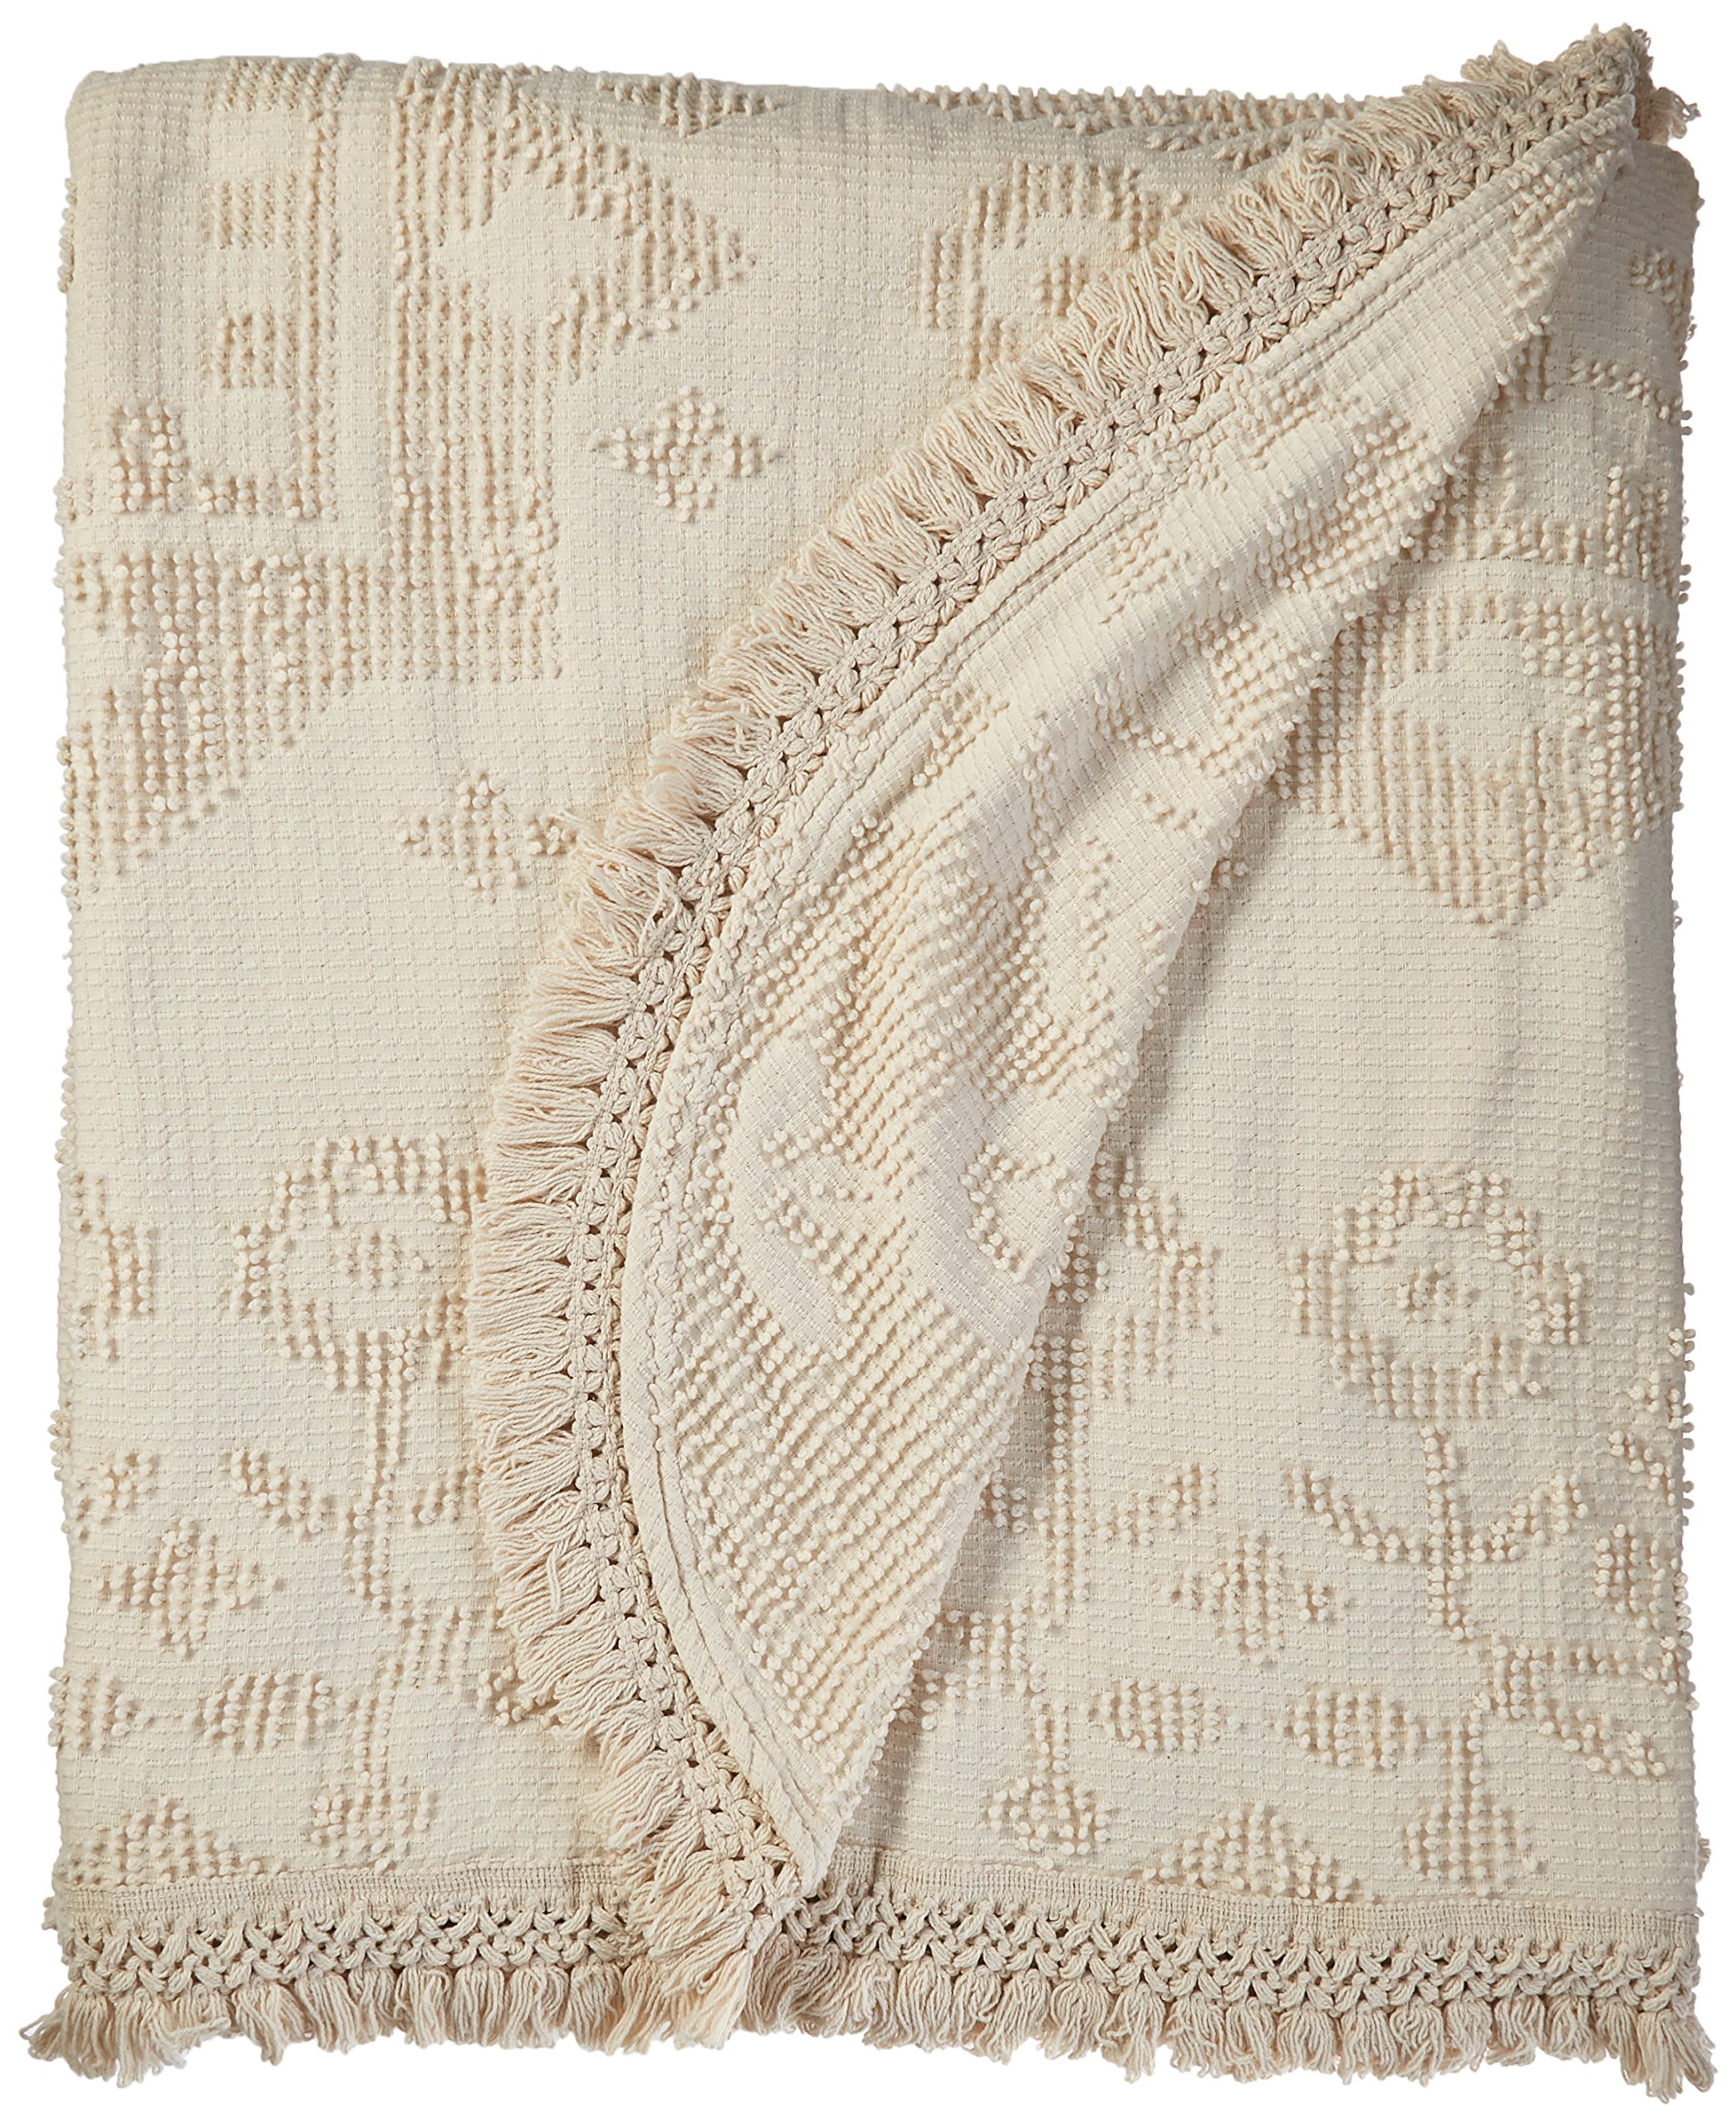 Maine Heritage New England Tradition Bedspread - King - Antique